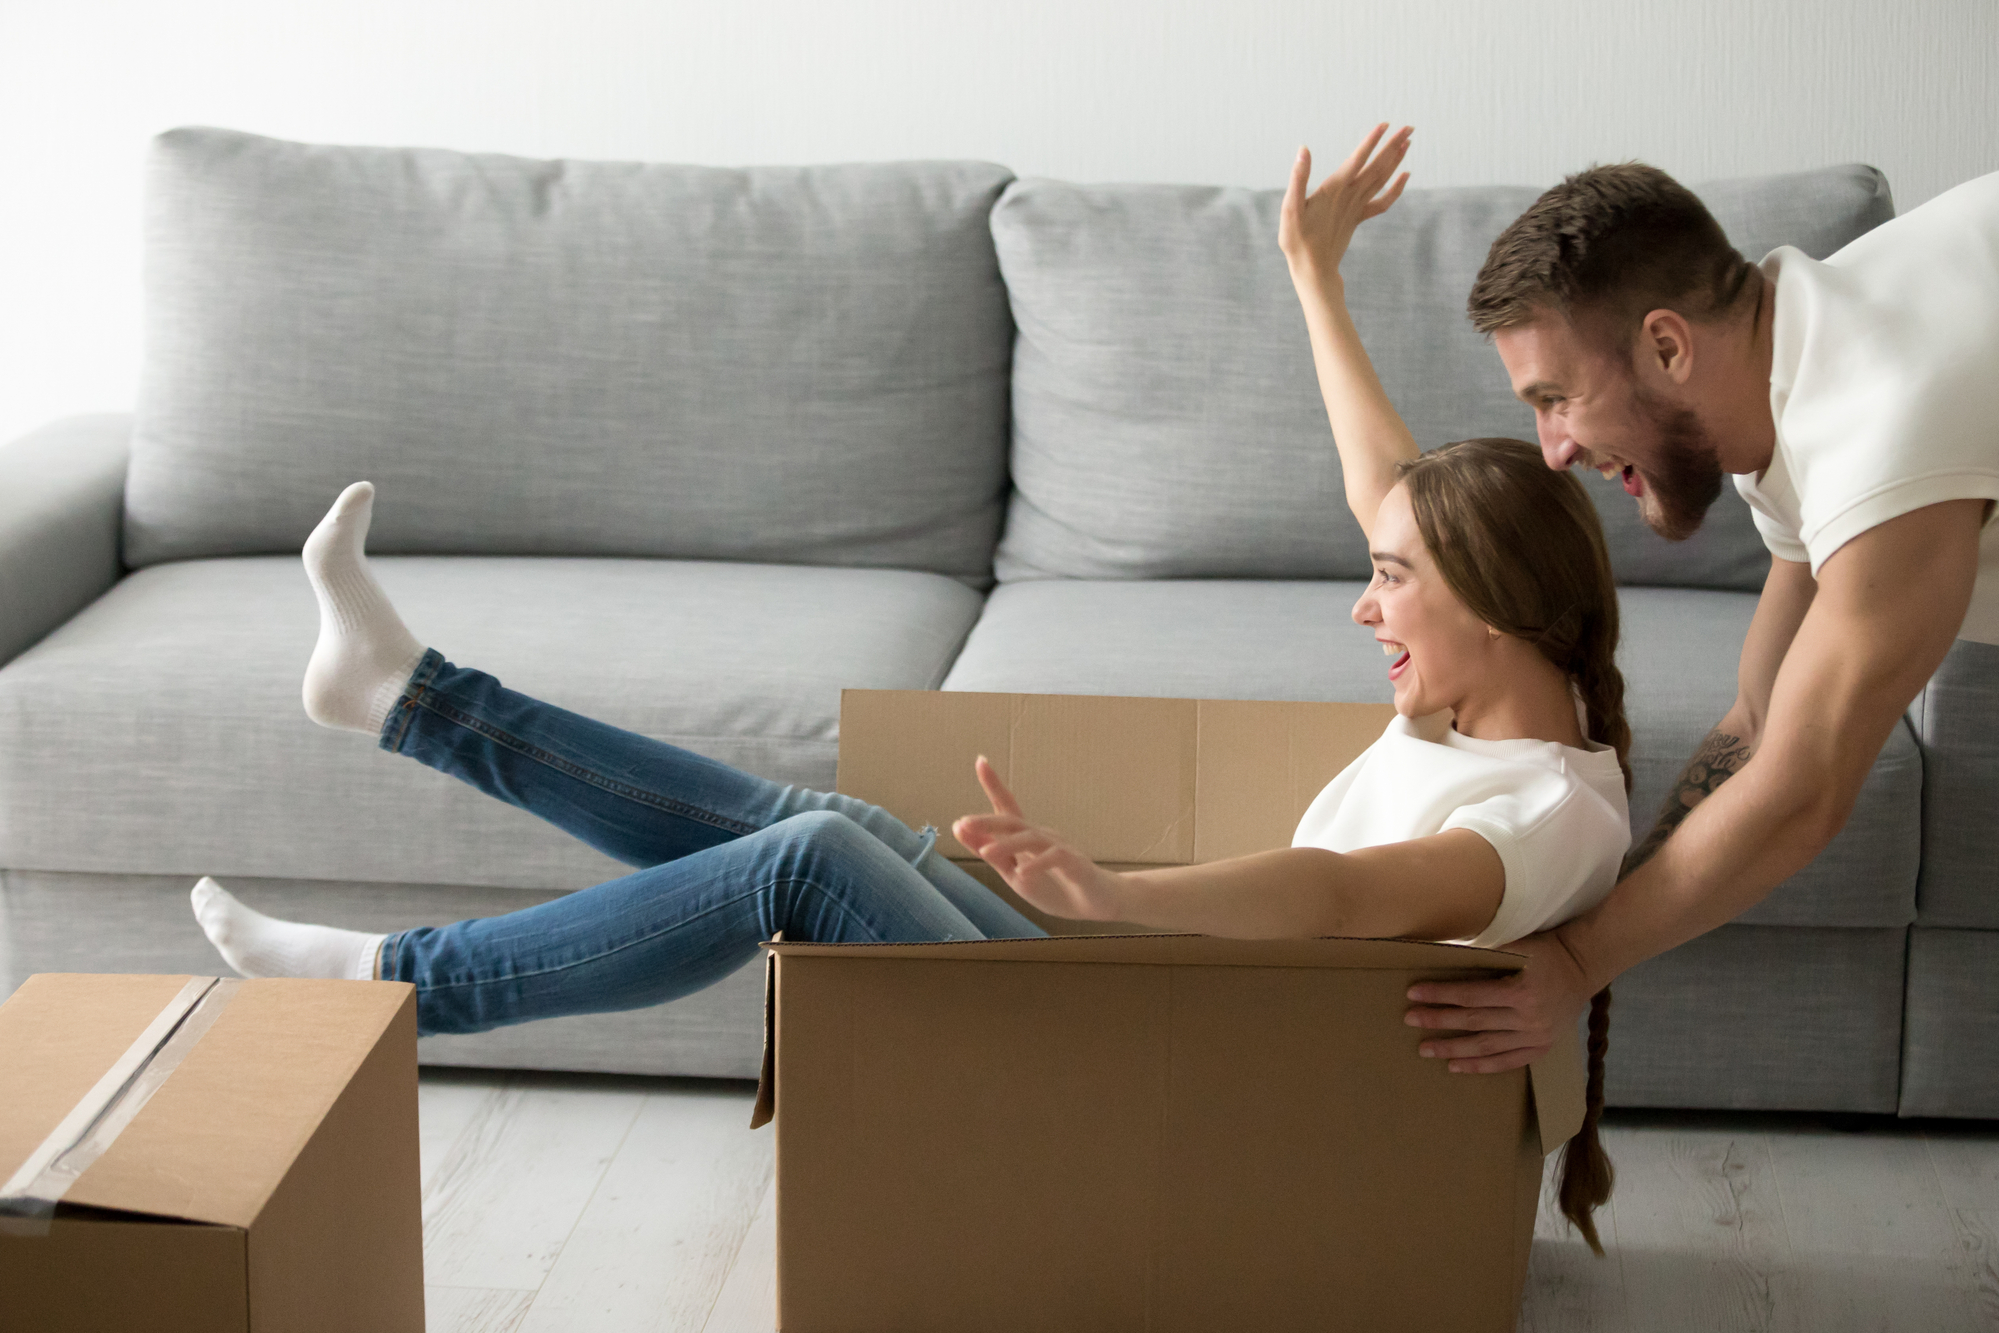 Happy couple riding in boxes having fun unpacking boxes